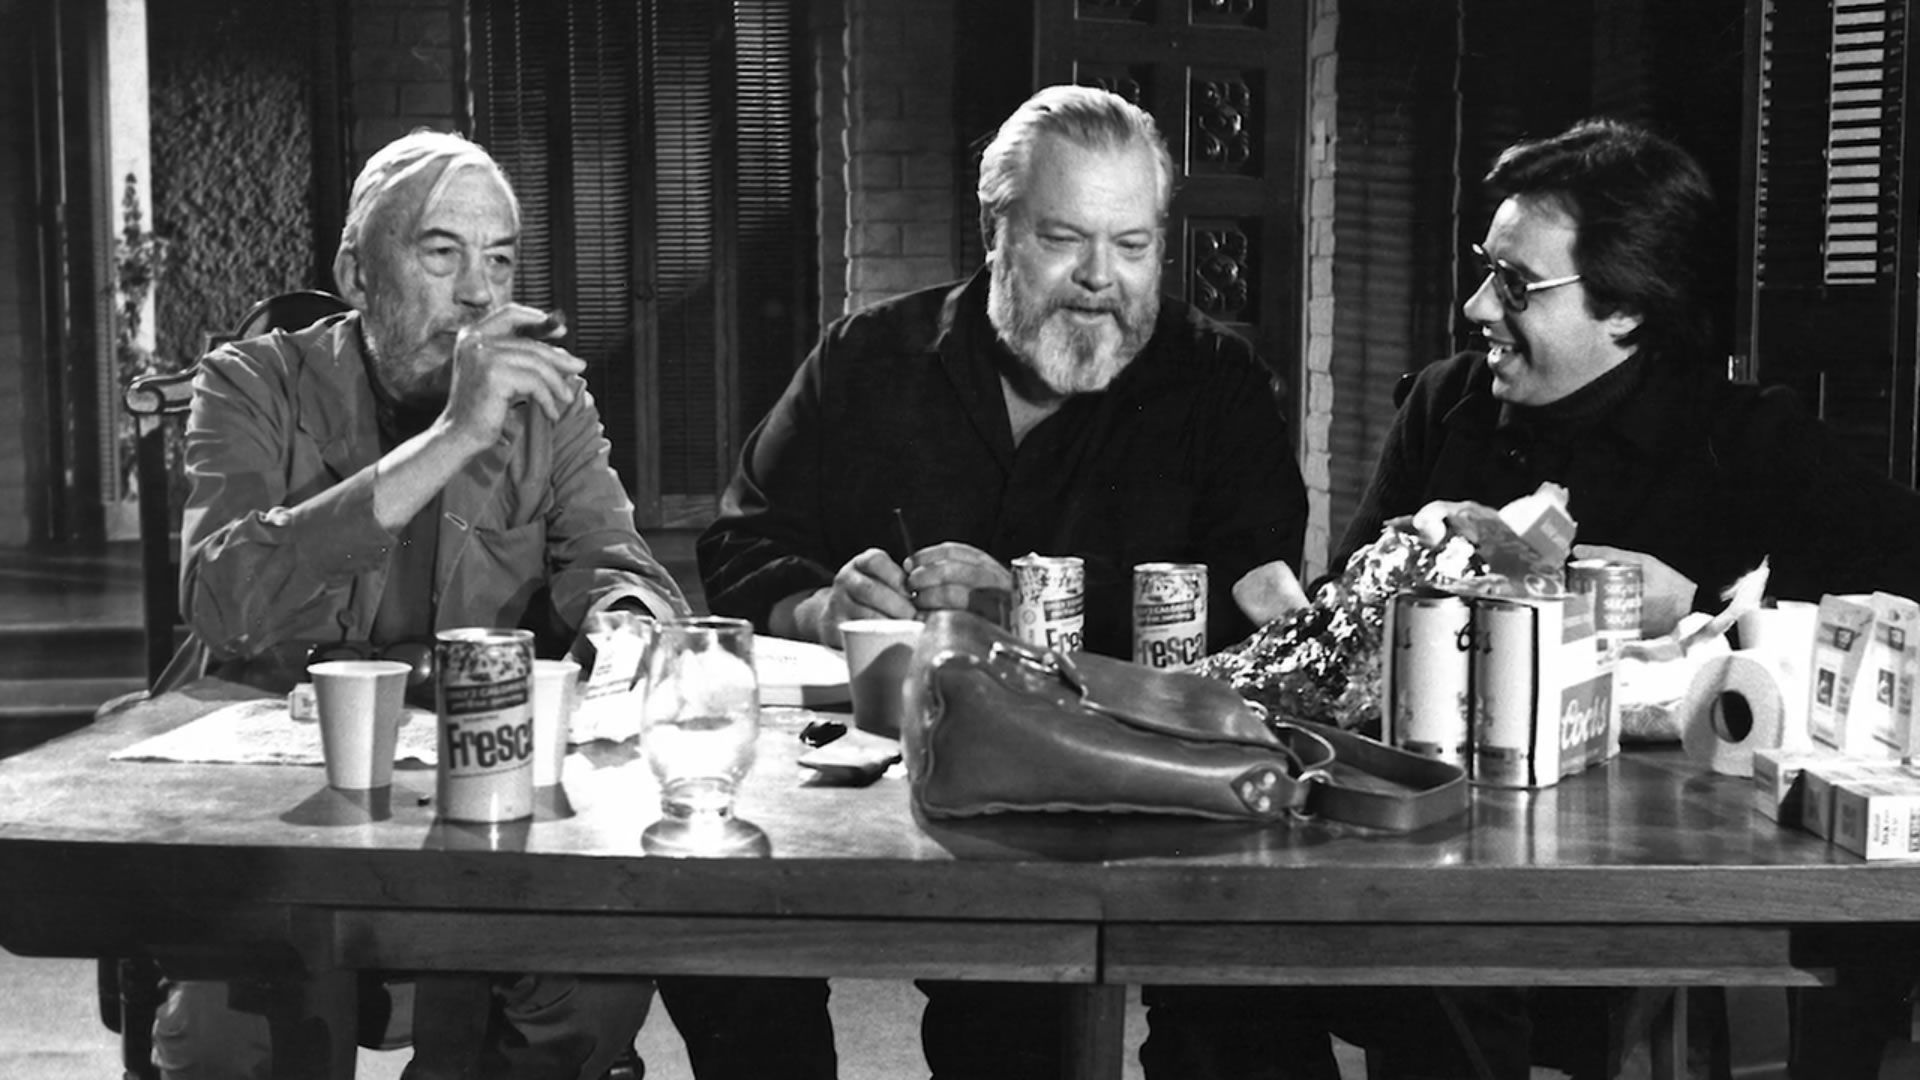 Orson Welles' final film will be completed at Netflix